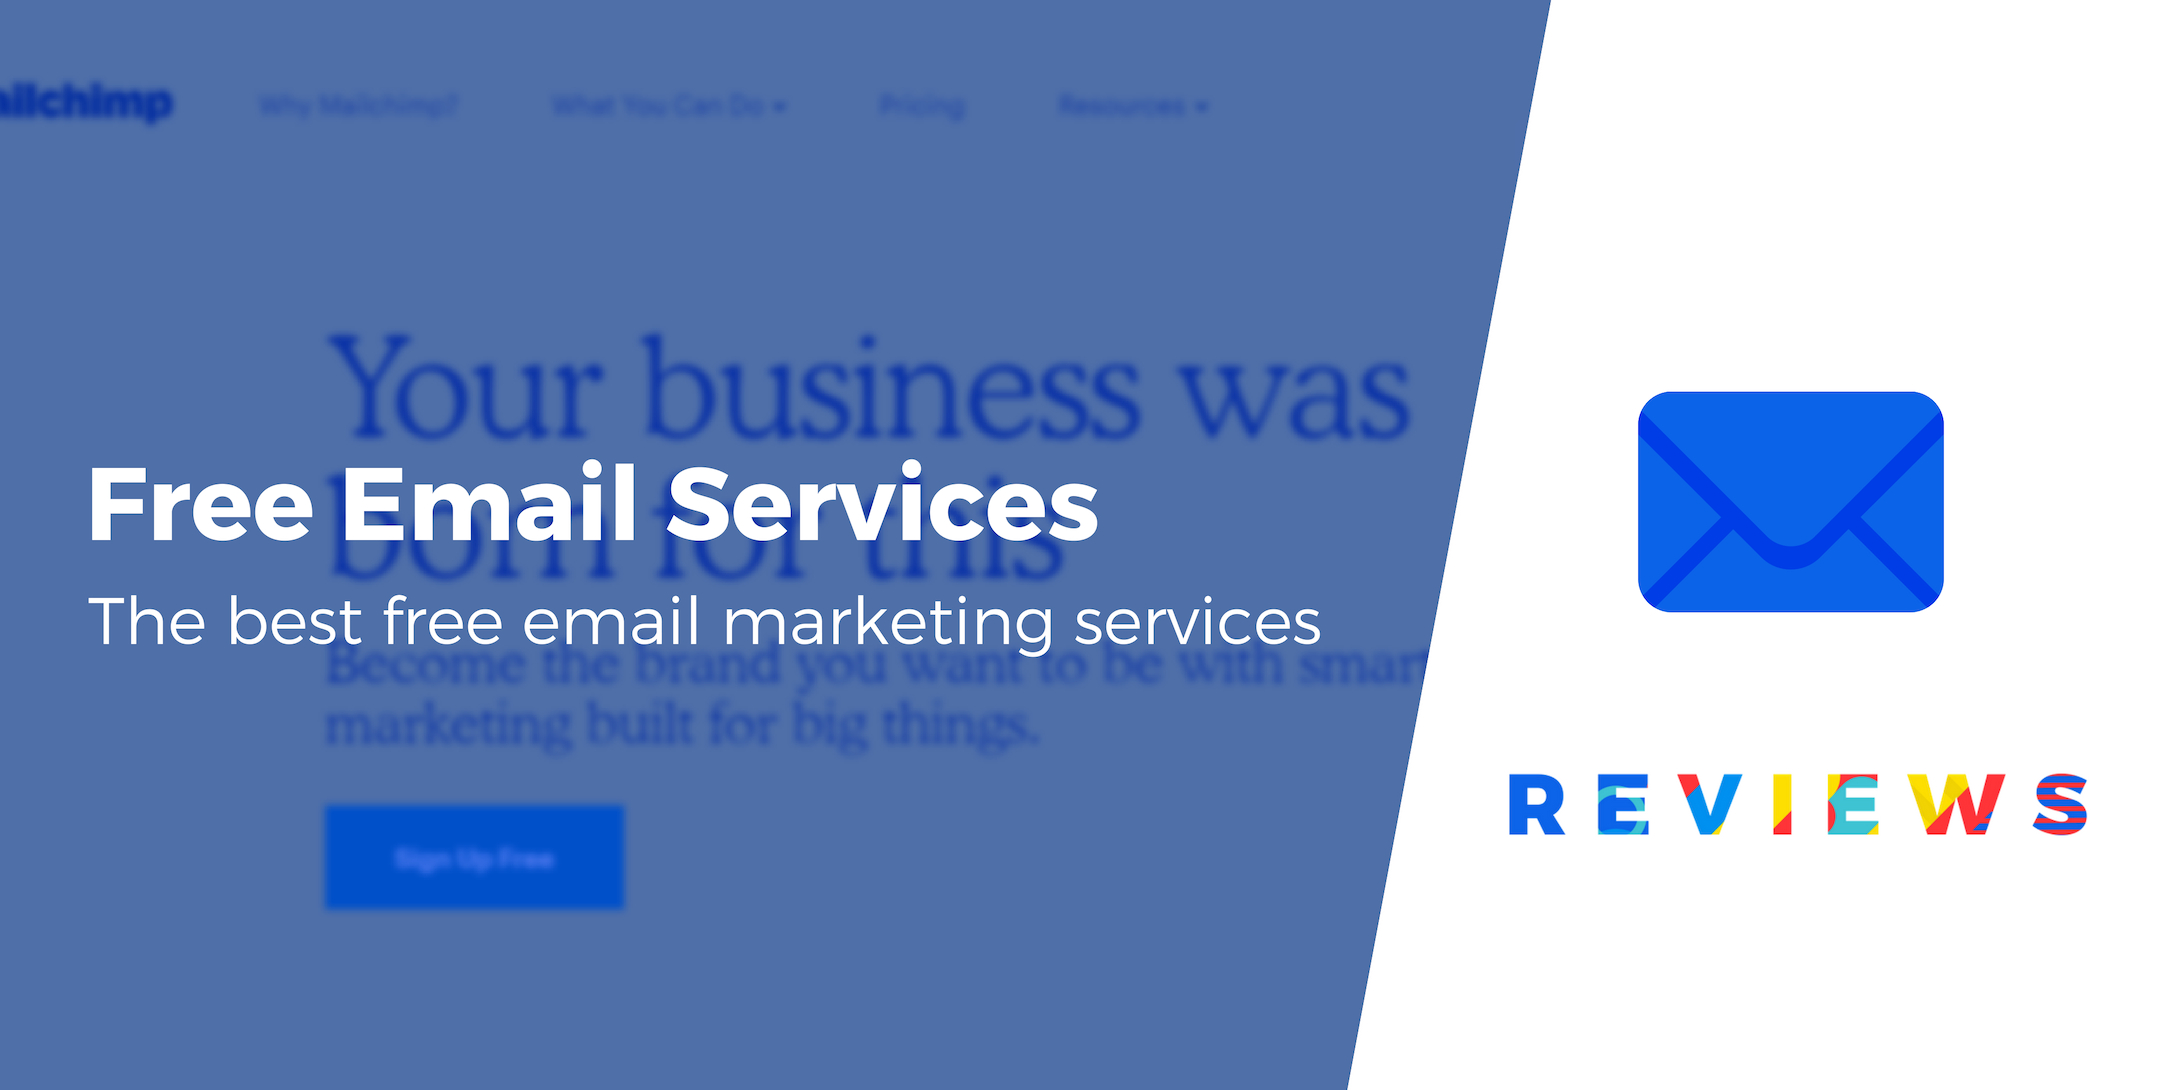 5 of the Best Free Email Marketing Services Compared